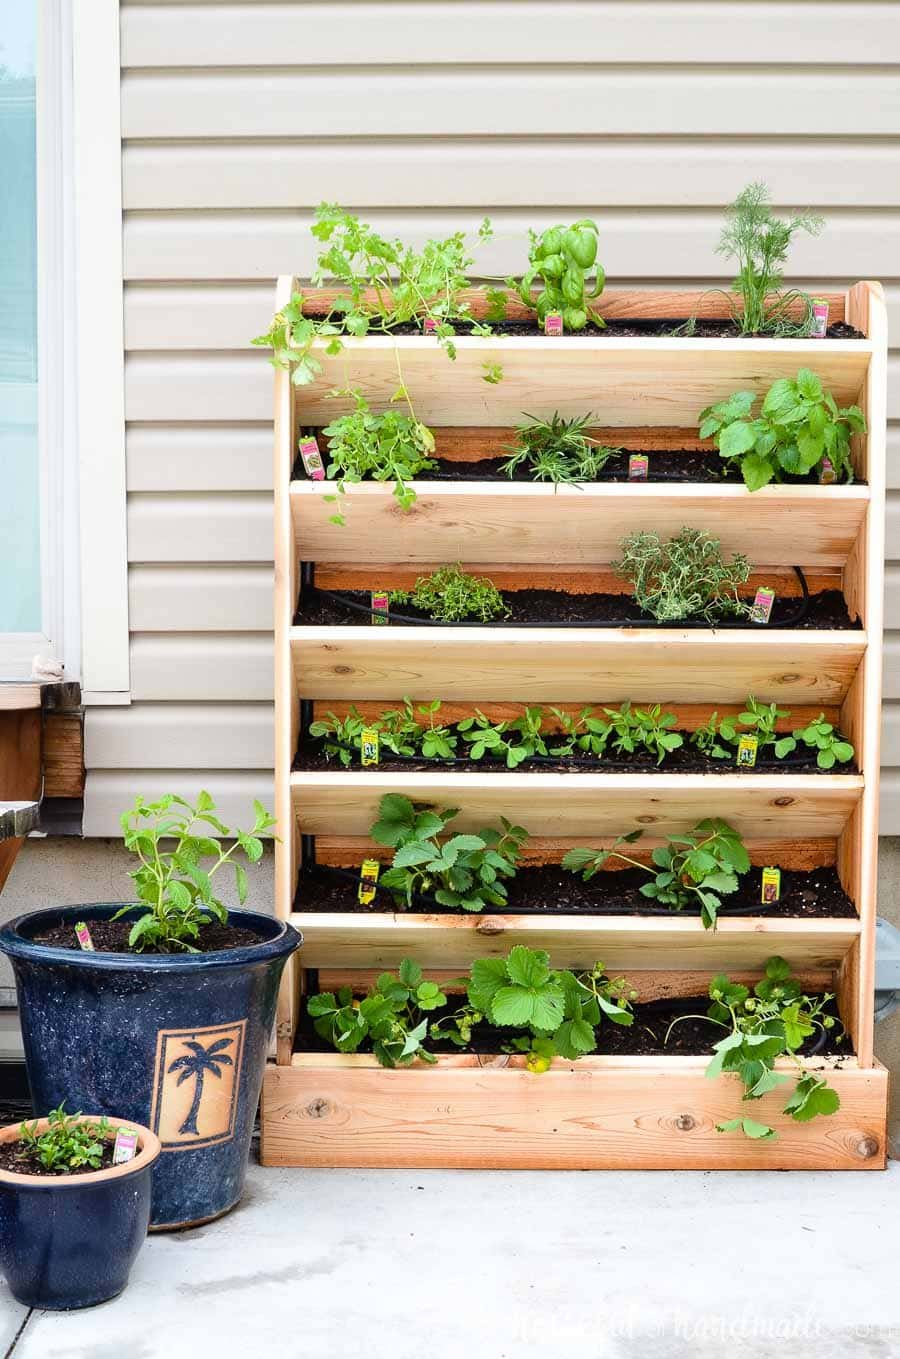 DIY vertical garden made from cedar is the 9th most popular DIY of the year.